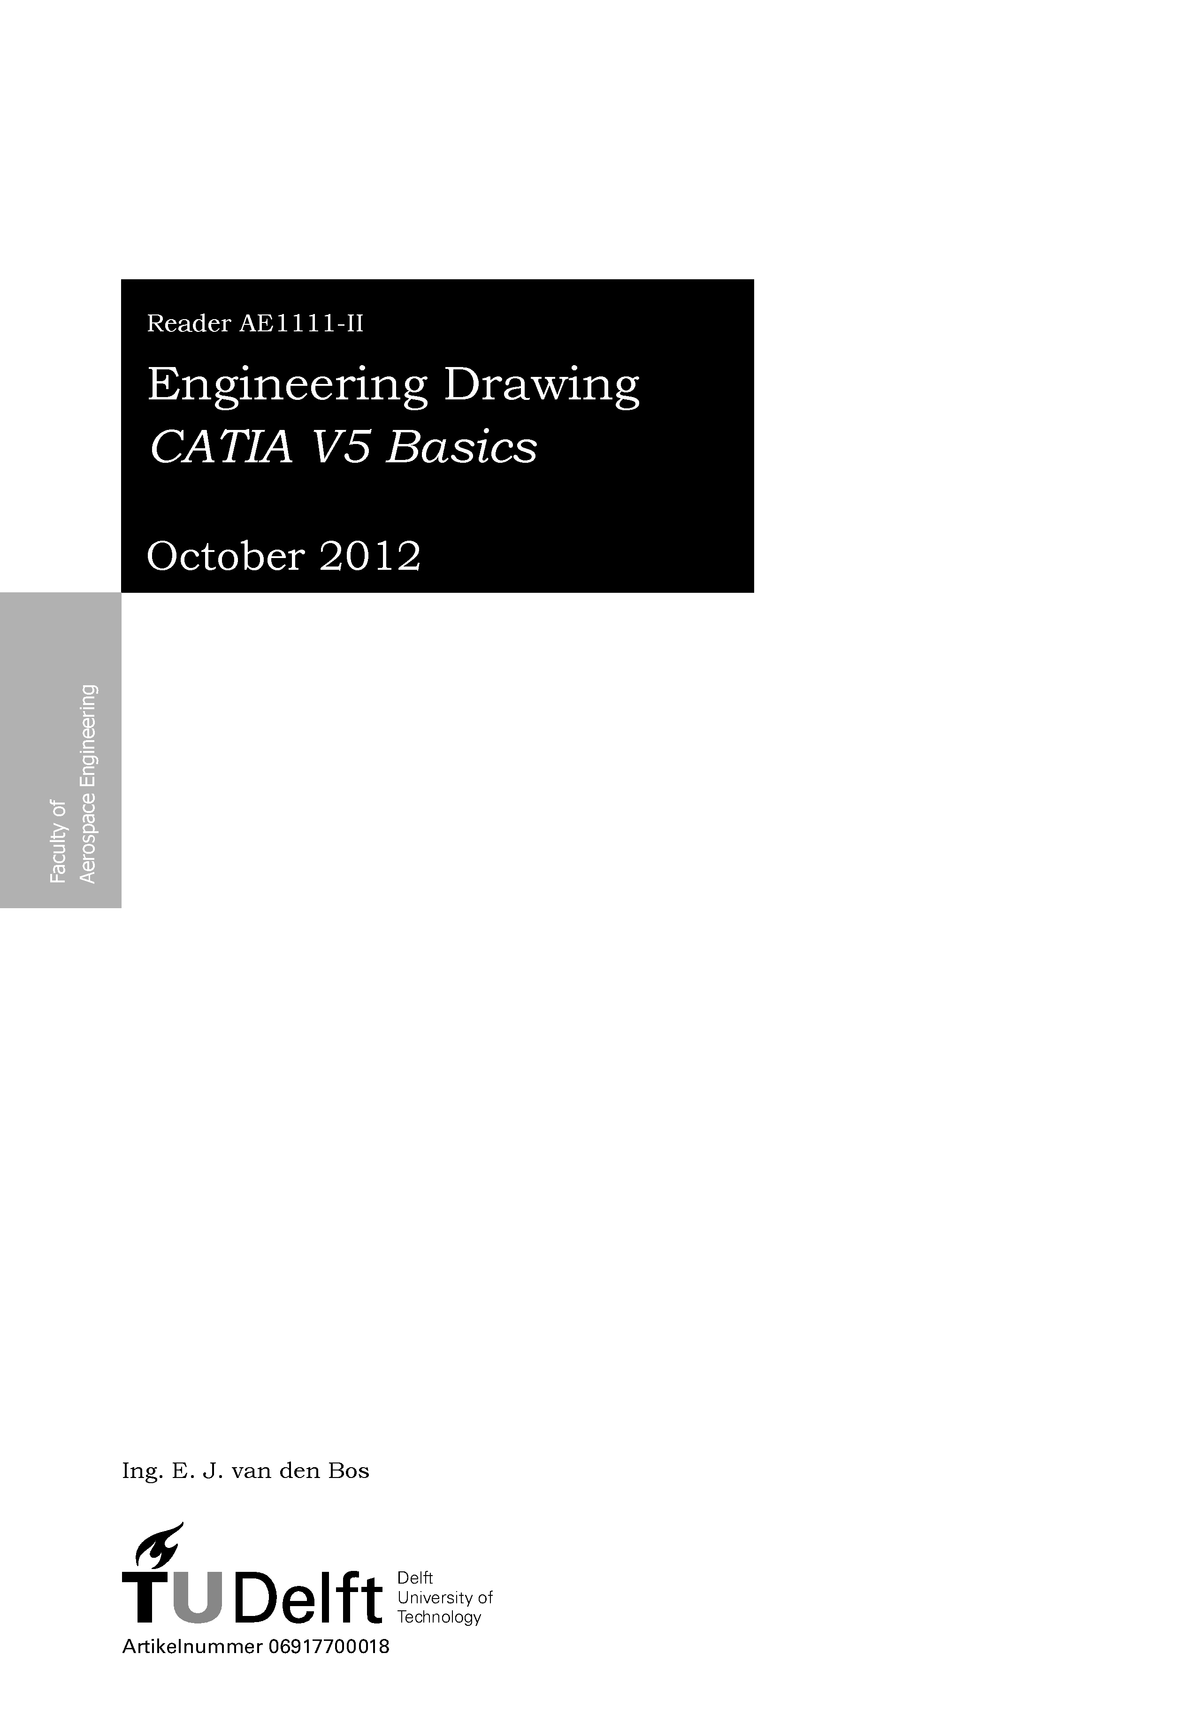 AE1111 II Engineering Drawing Catia Basics - AE1111-II: Engineering